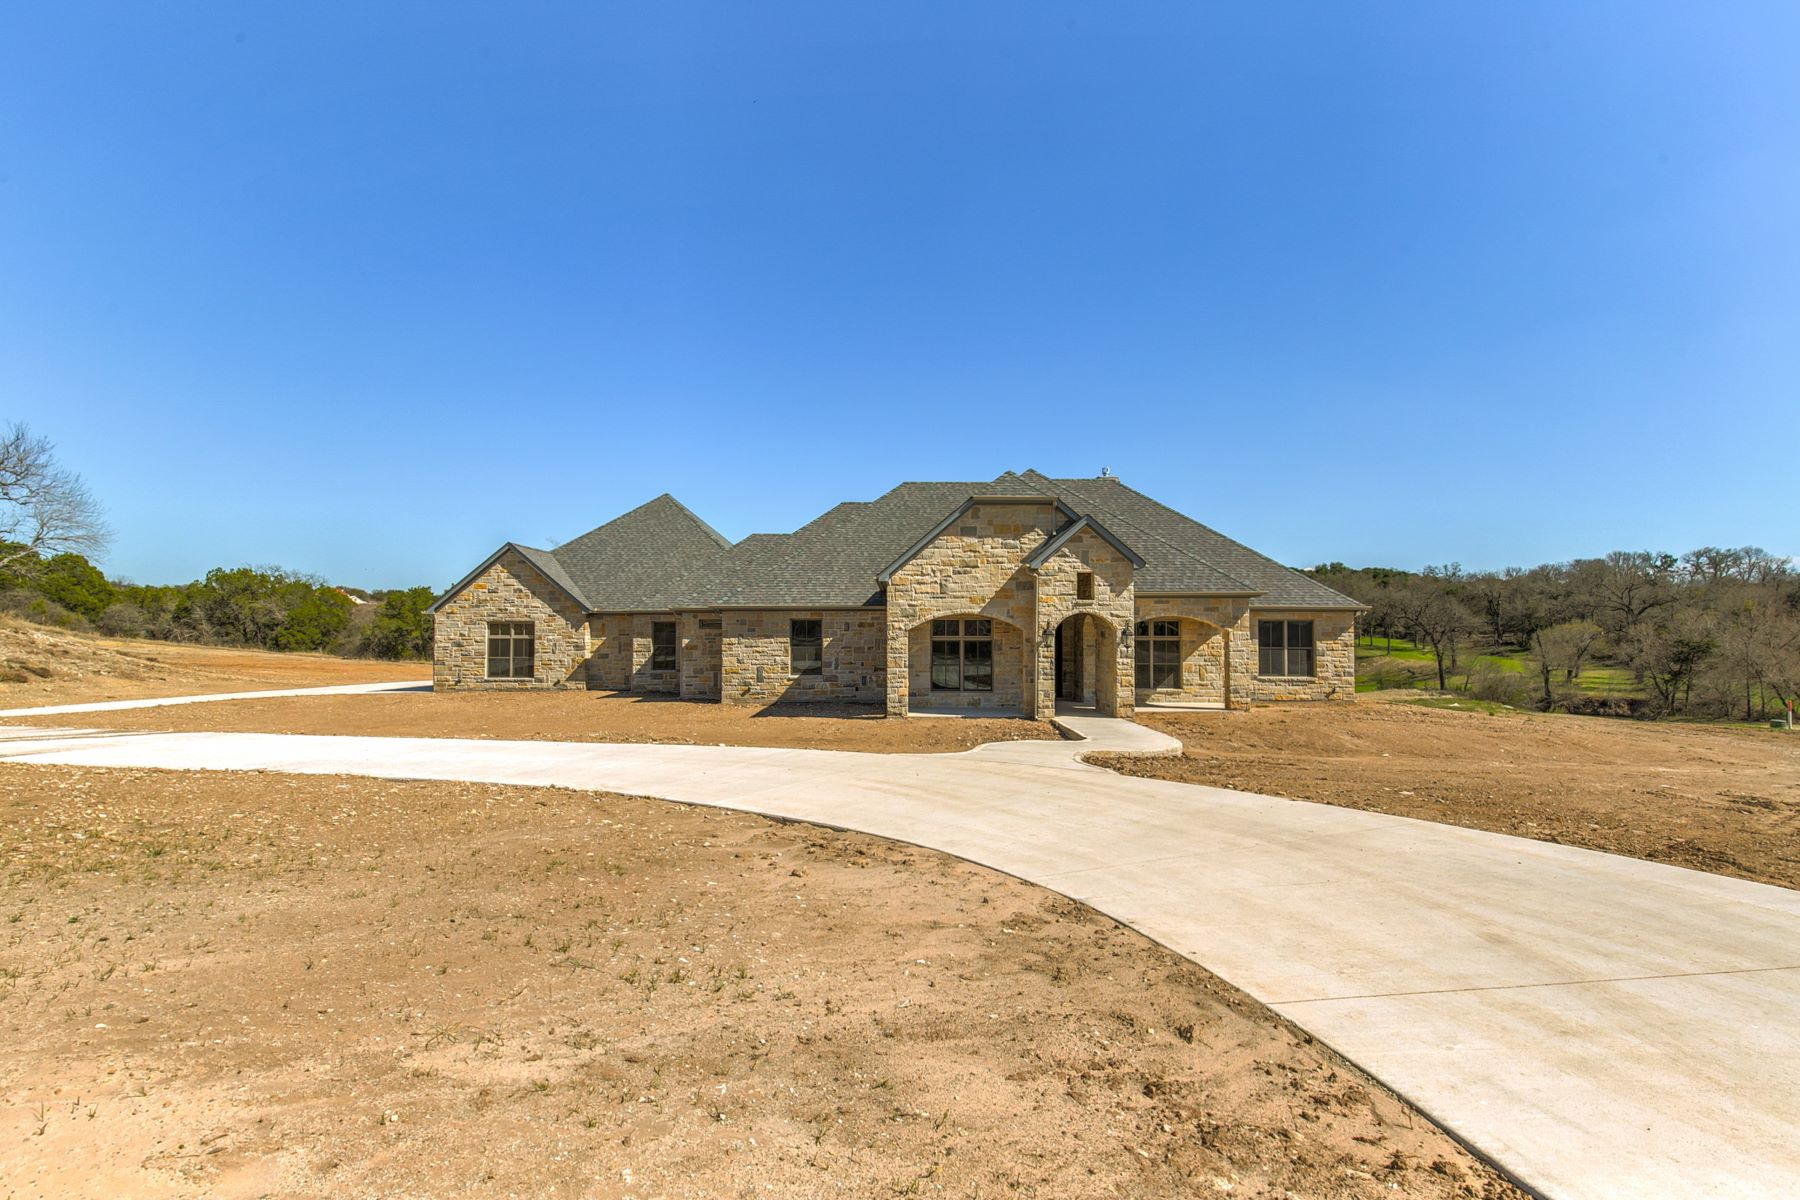 Single Family Homes for Active at 2407 Cactus Rio Lane Weatherford, Texas 76087 United States